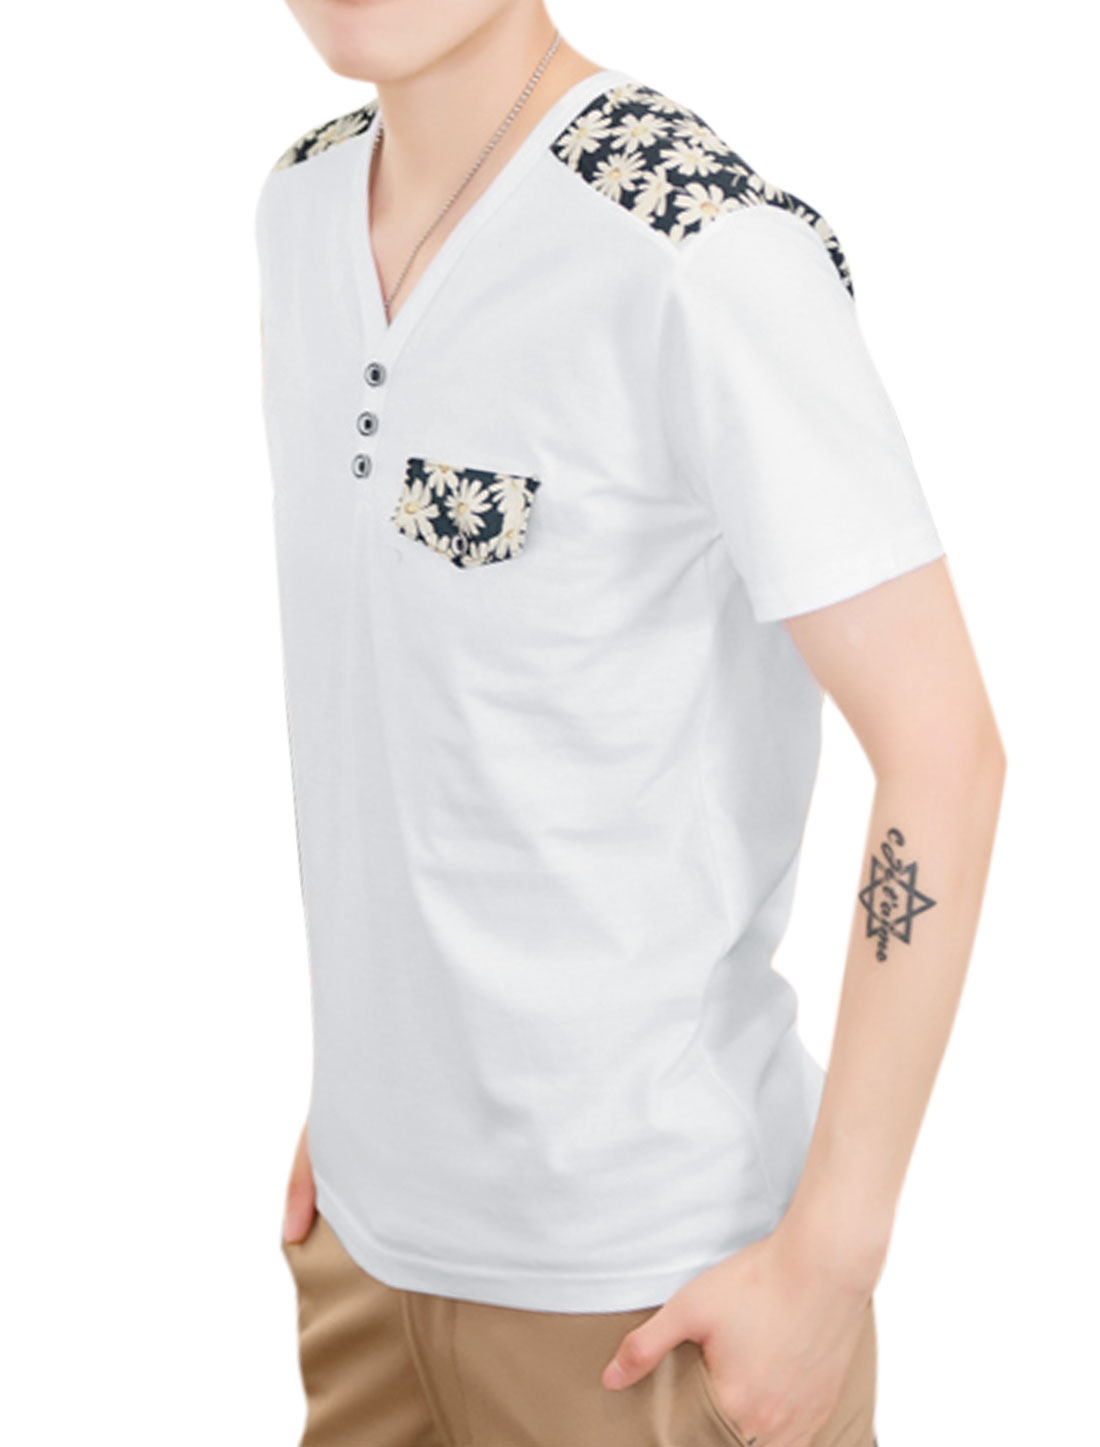 Men Y Neck Short Sleeve Floral Prints Leisure T-Shirt White S